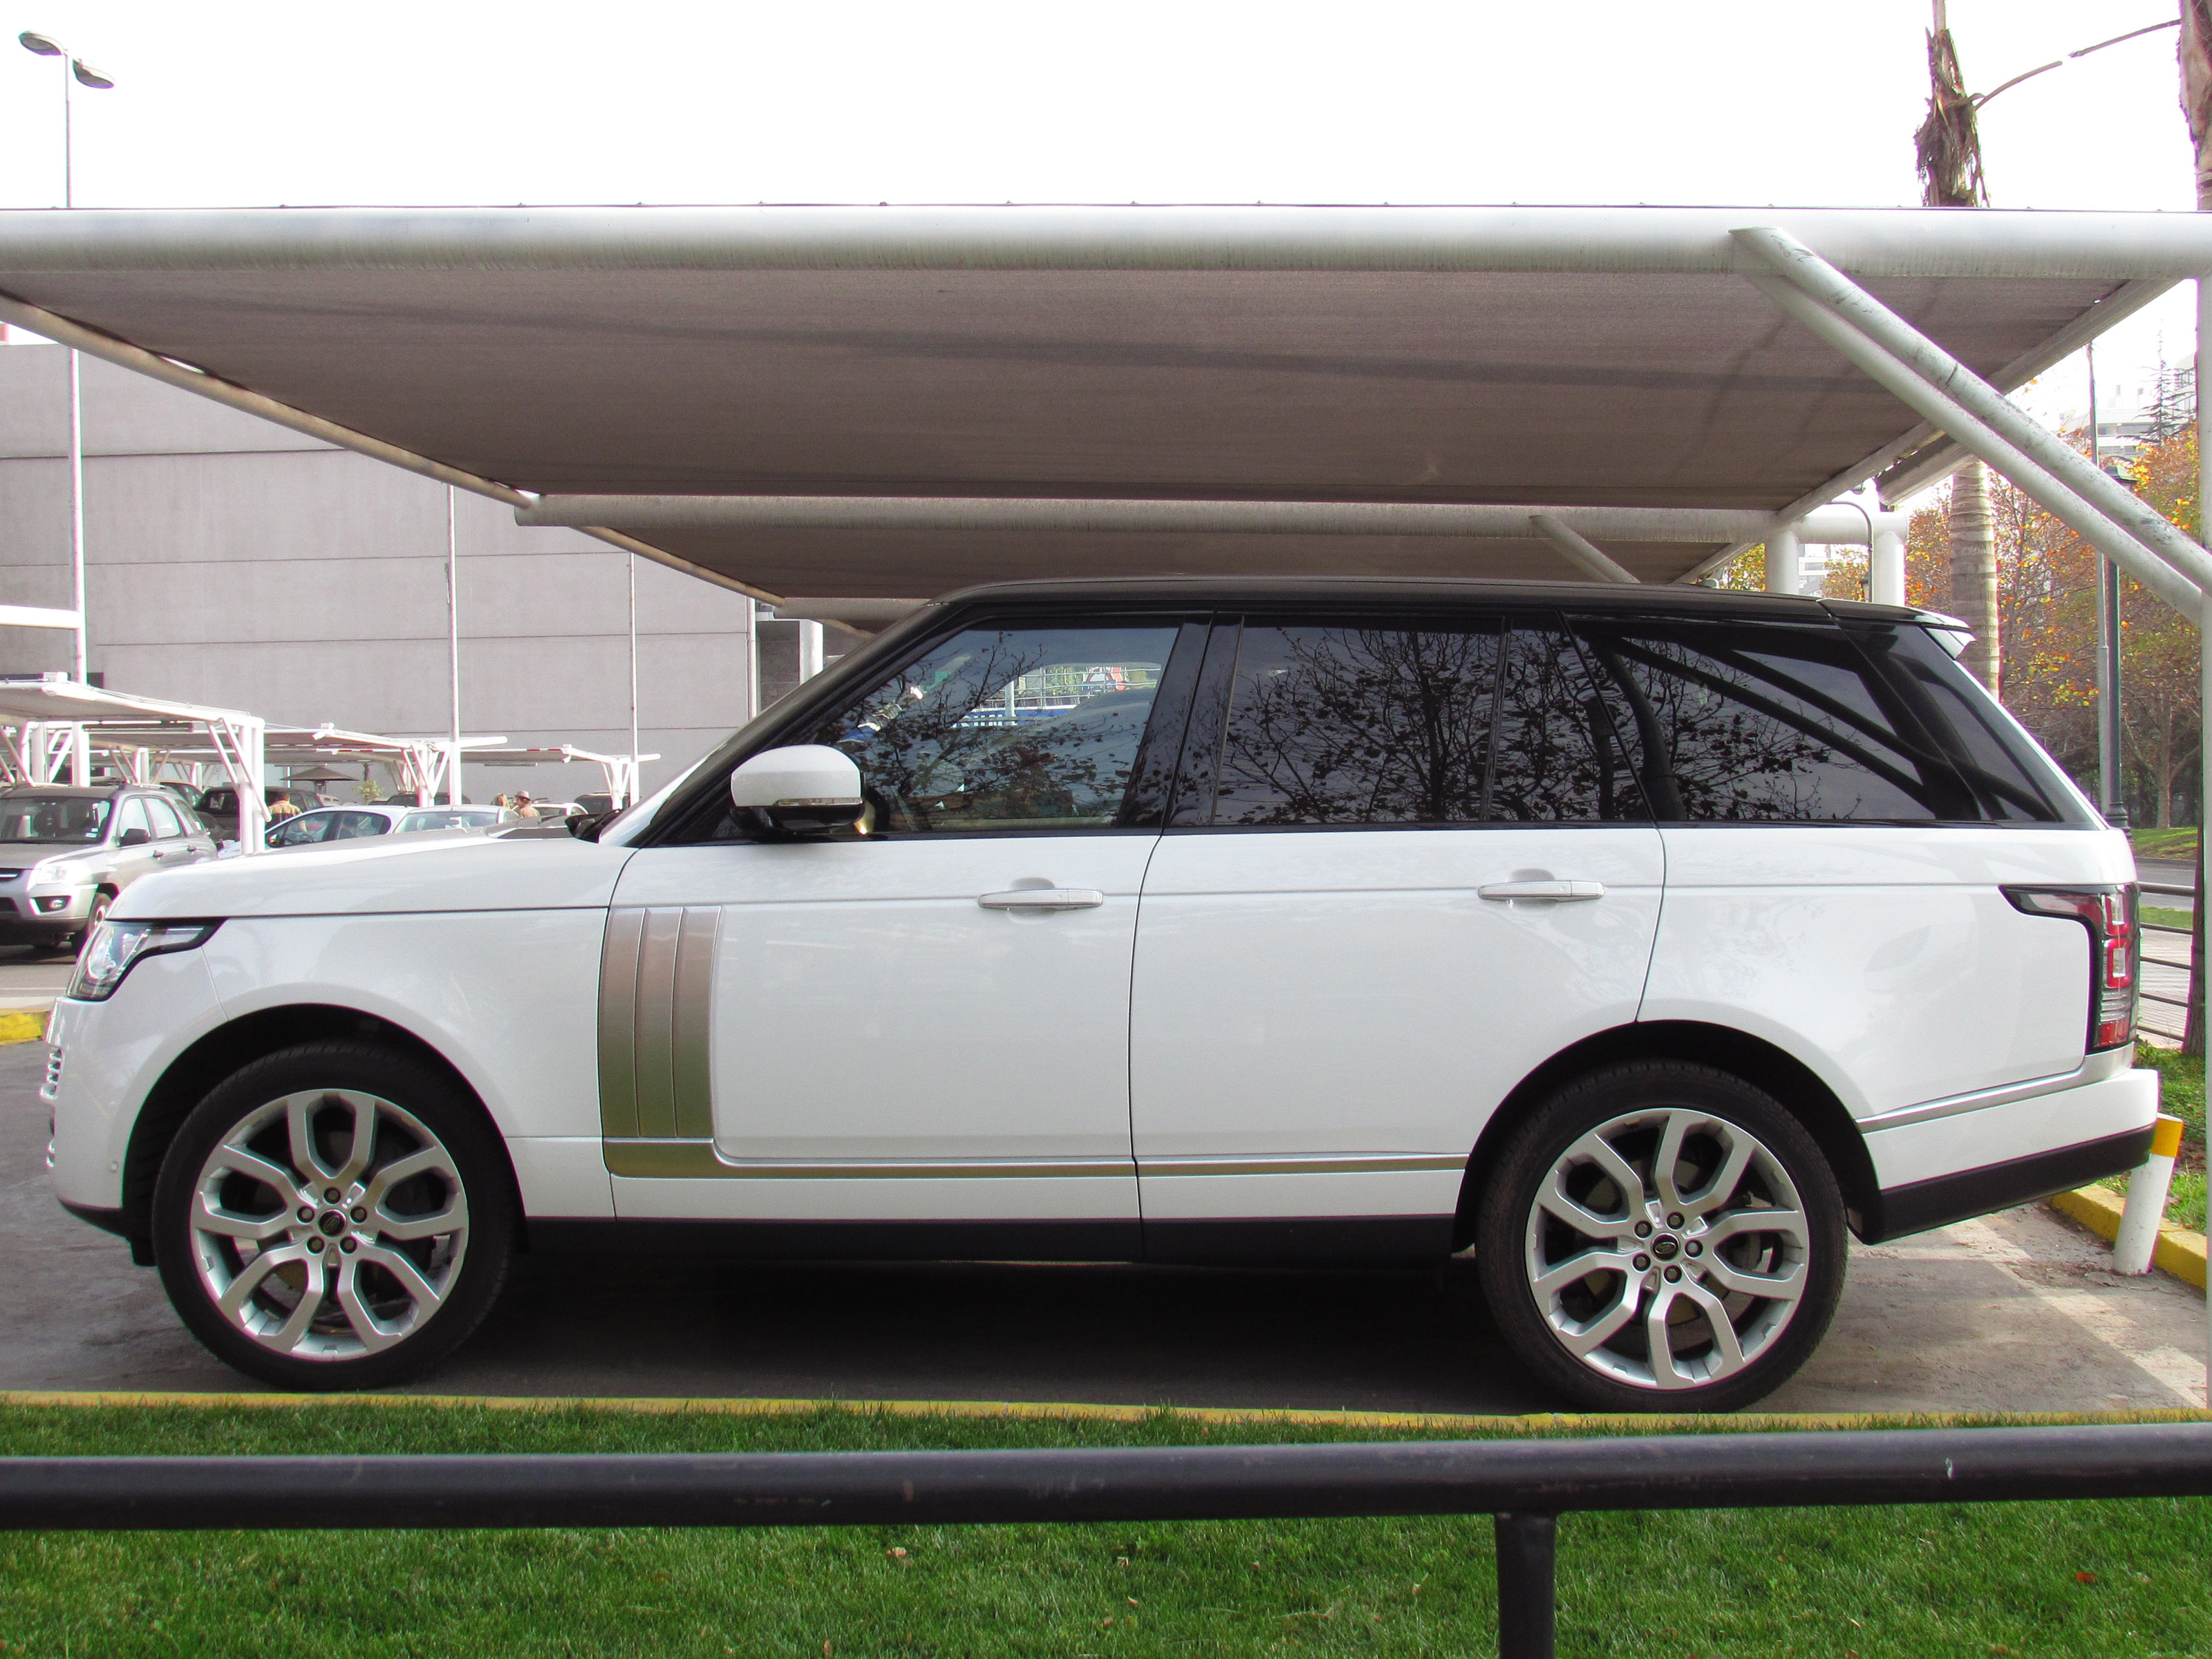 Range Rover Black >> File:Land Rover Range Rover Vogue SE Supercharged 2014 (14483875392).jpg - Wikimedia Commons